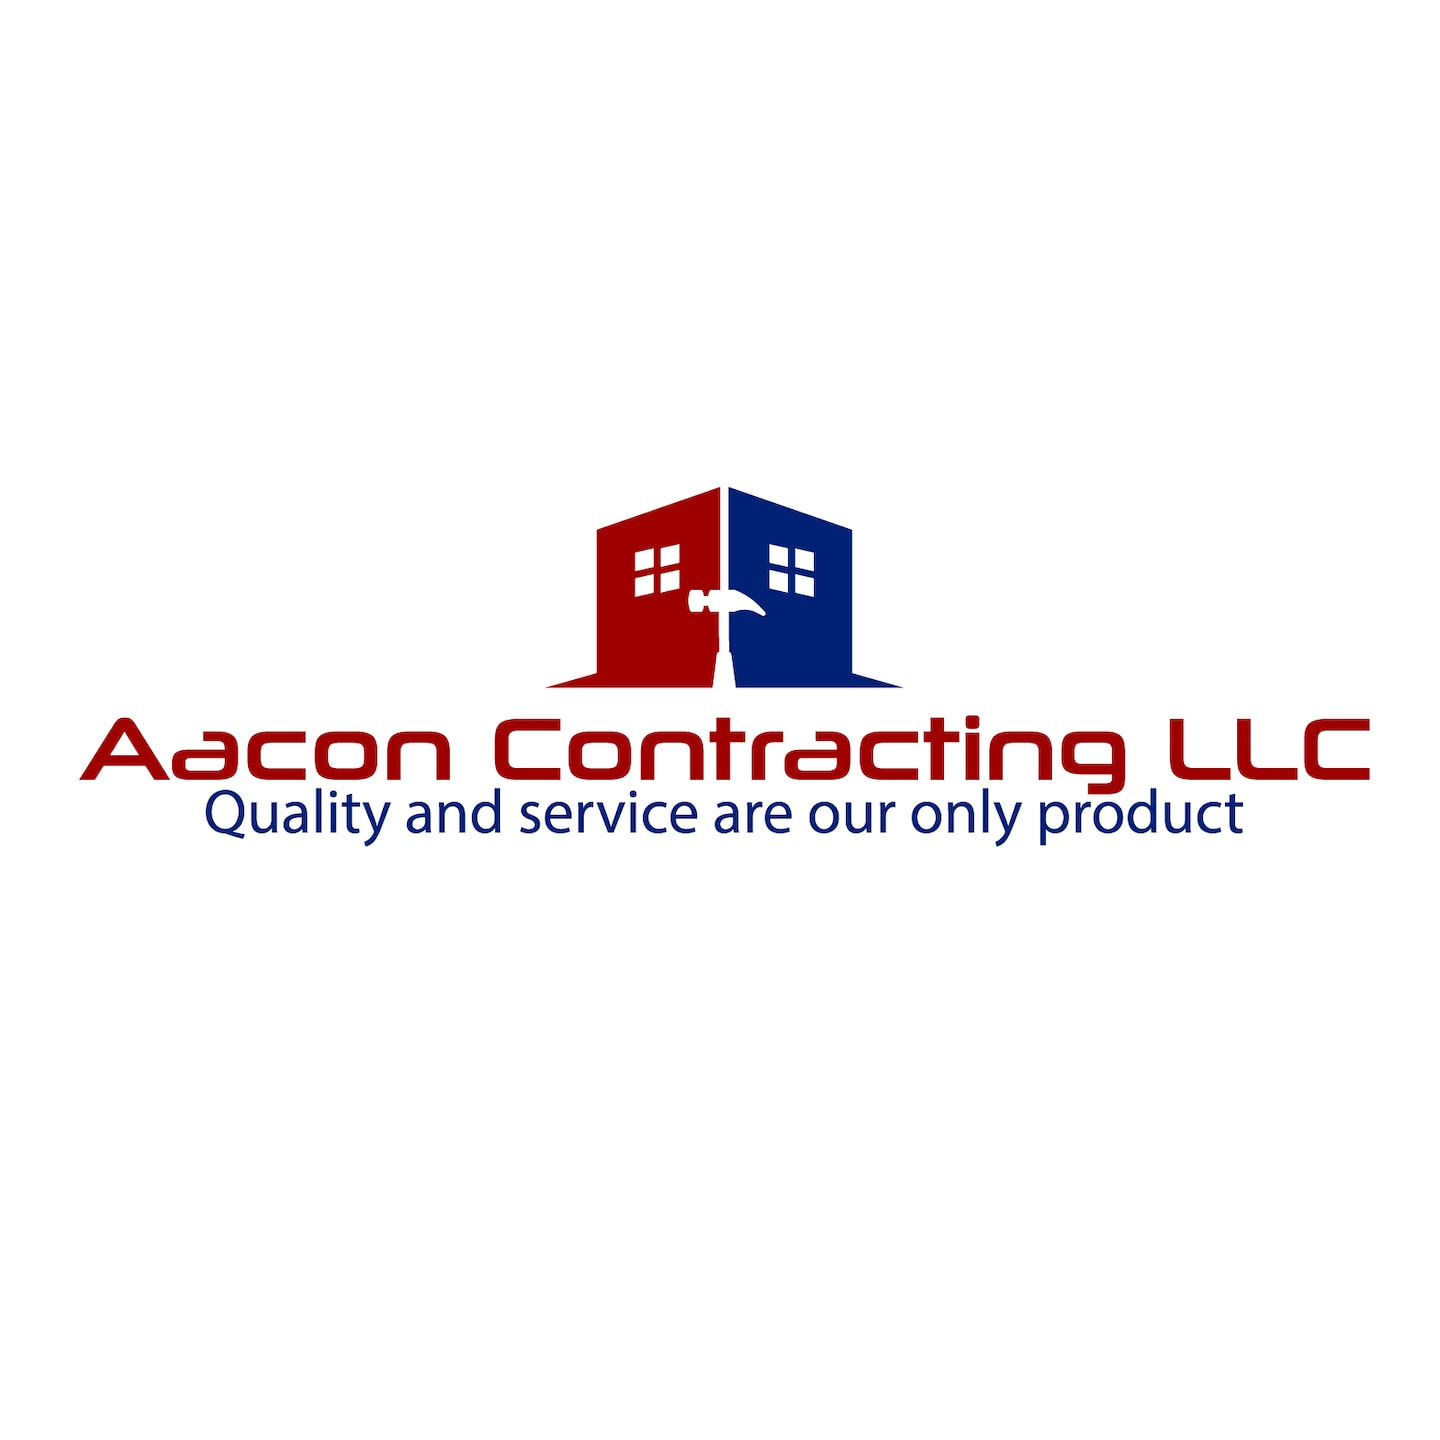 Aacon Contracting, LLC